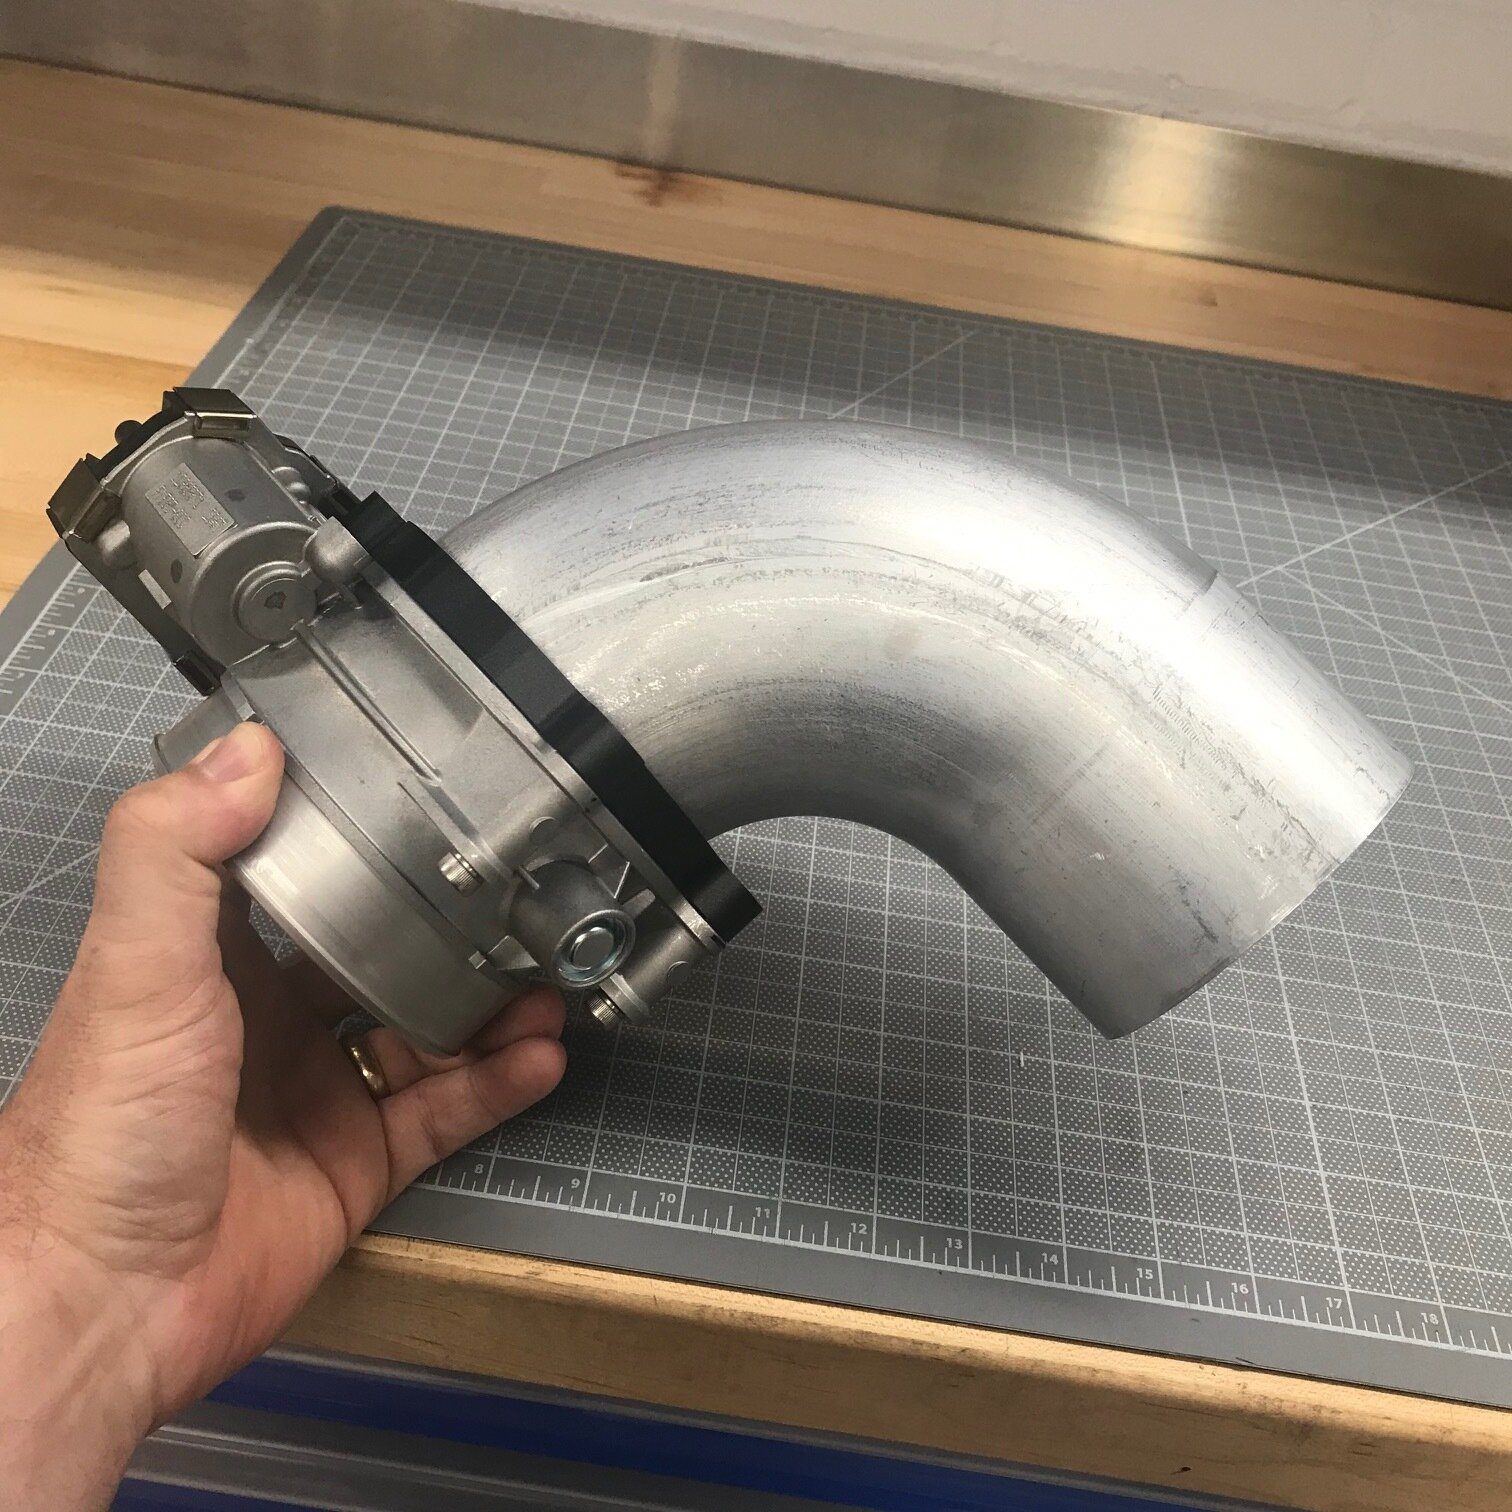 3D-printed prototype flange fits well